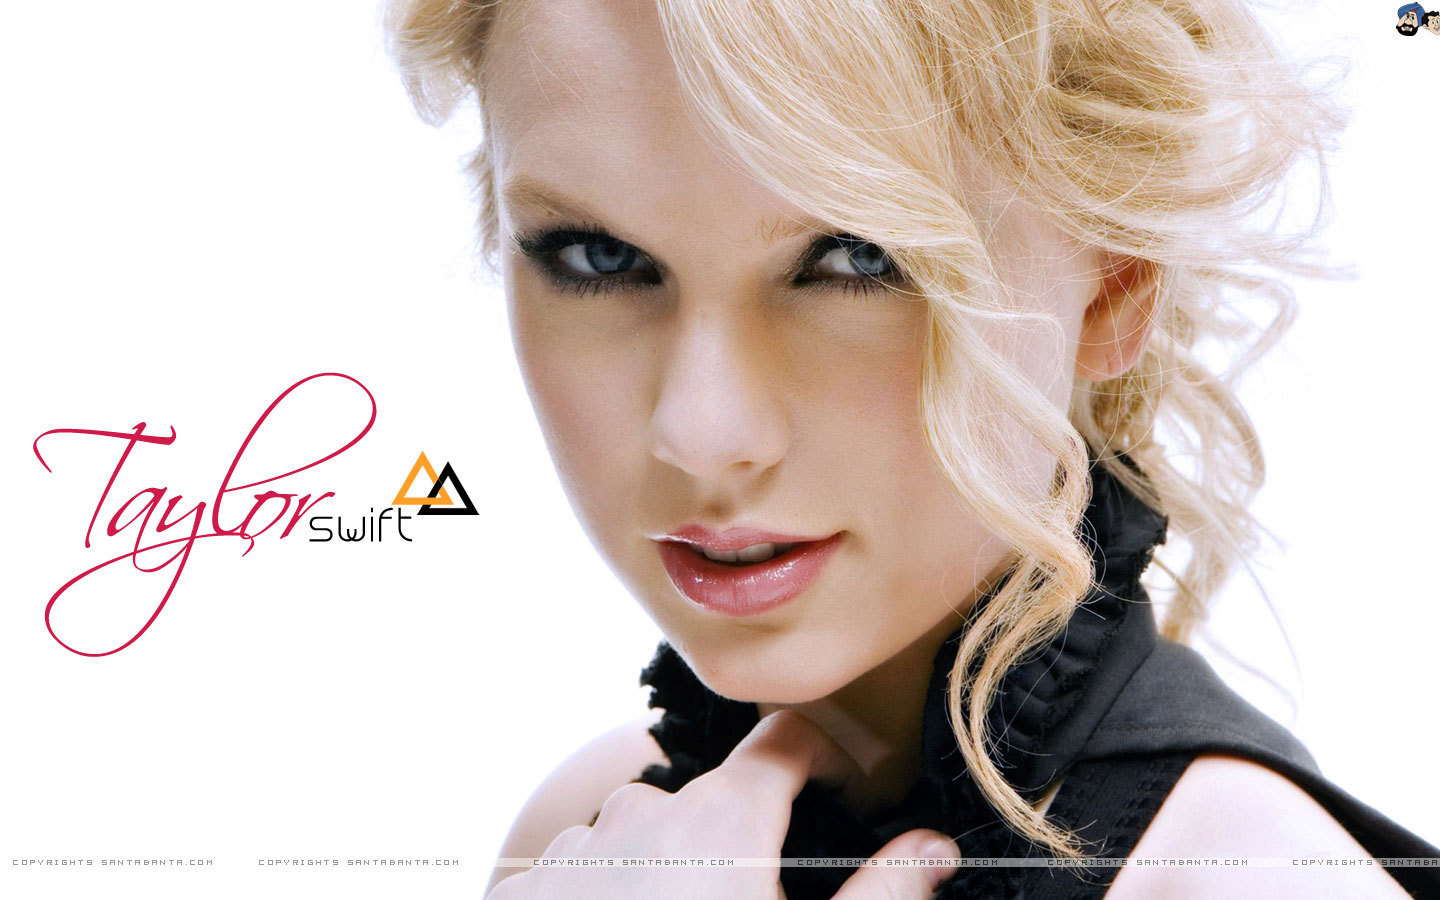 Lovely Taylor Wallpaper   Taylor Swift Wallpaper 17031175 1440x900